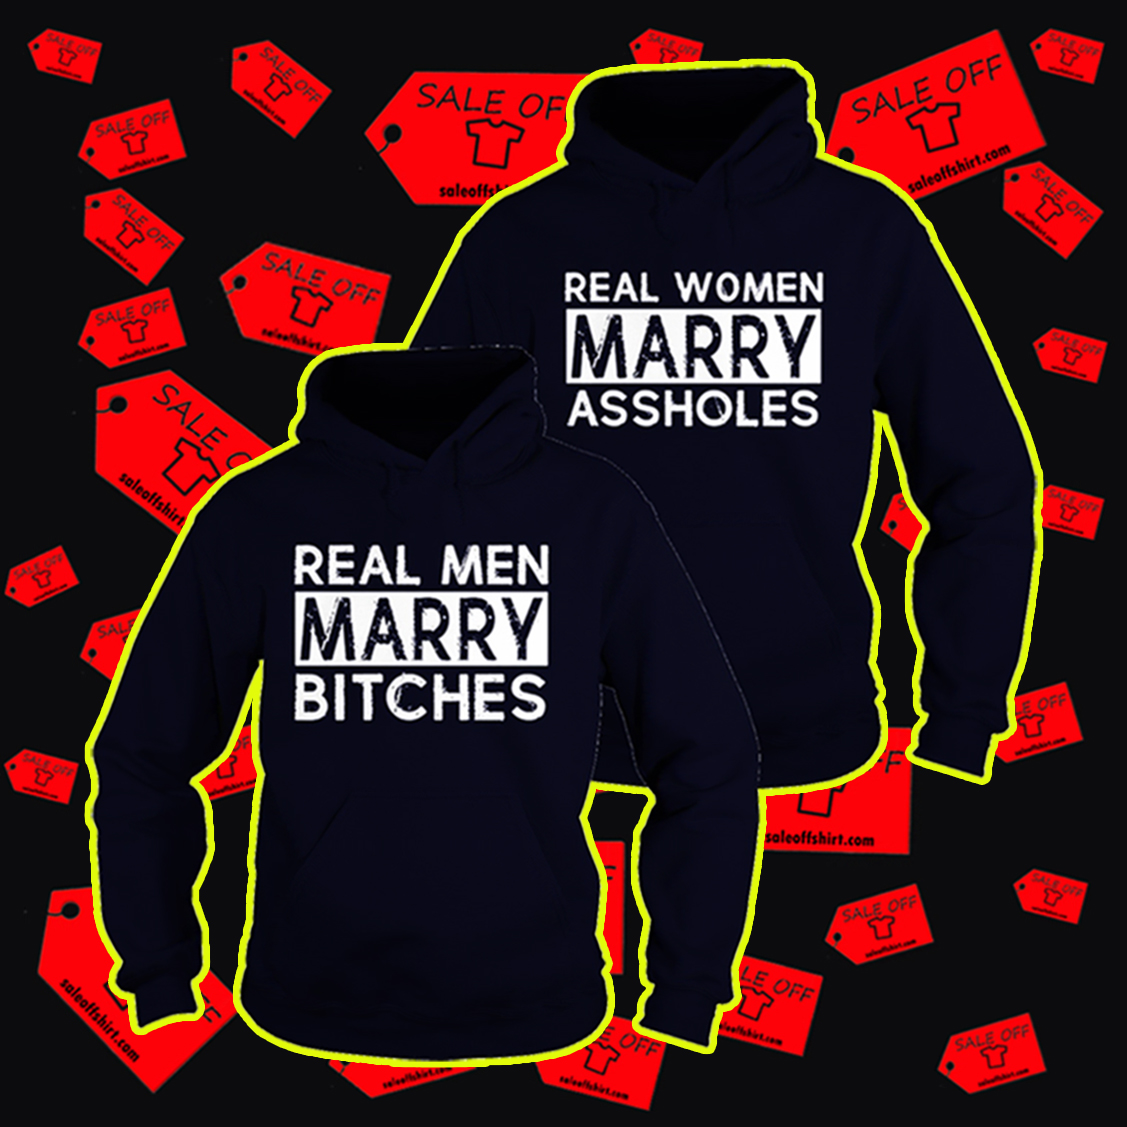 Real men marry bitches Real women marry assholes hoodie